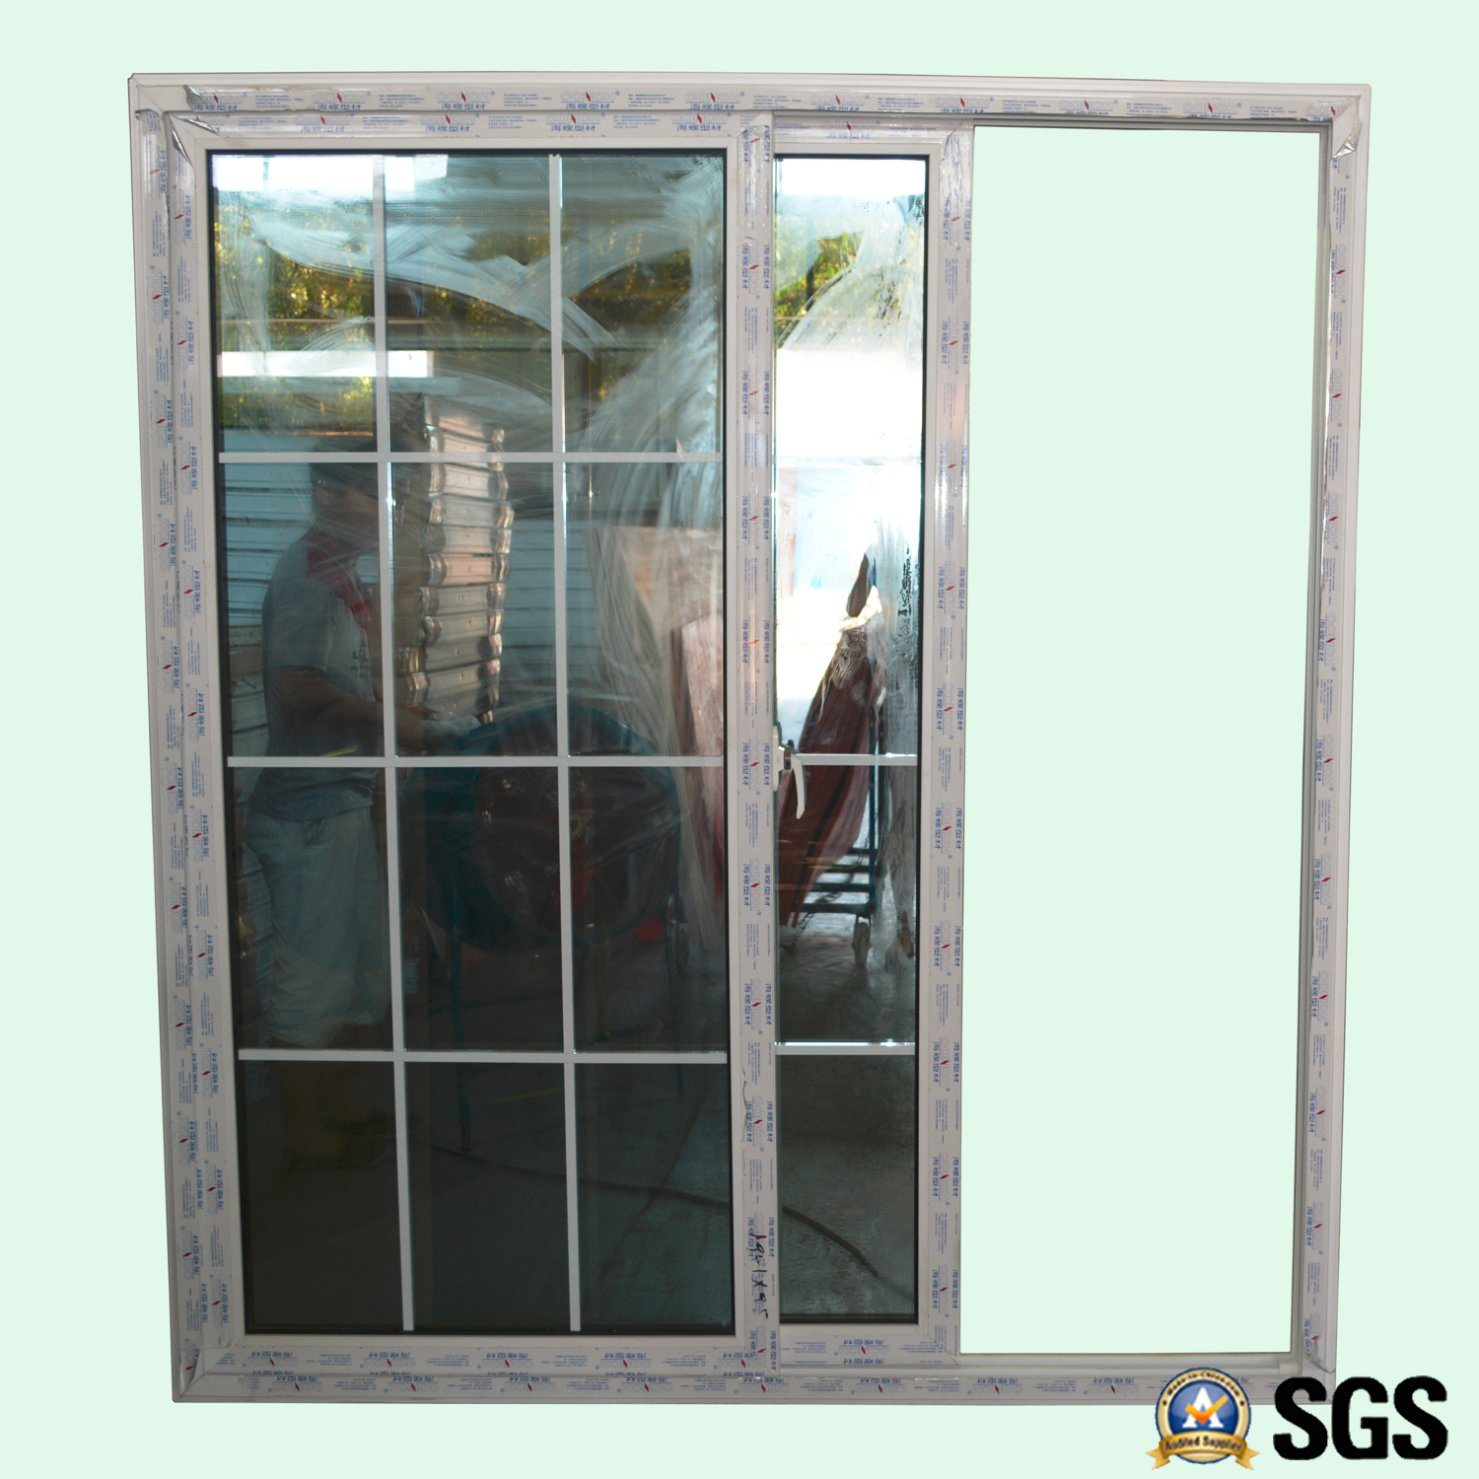 China Good Quality Double Glass with Grid White Colour UPVC Profile Sliding Door Door Window K02084 - China Window UPVC Window & China Good Quality Double Glass with Grid White Colour UPVC Profile ...